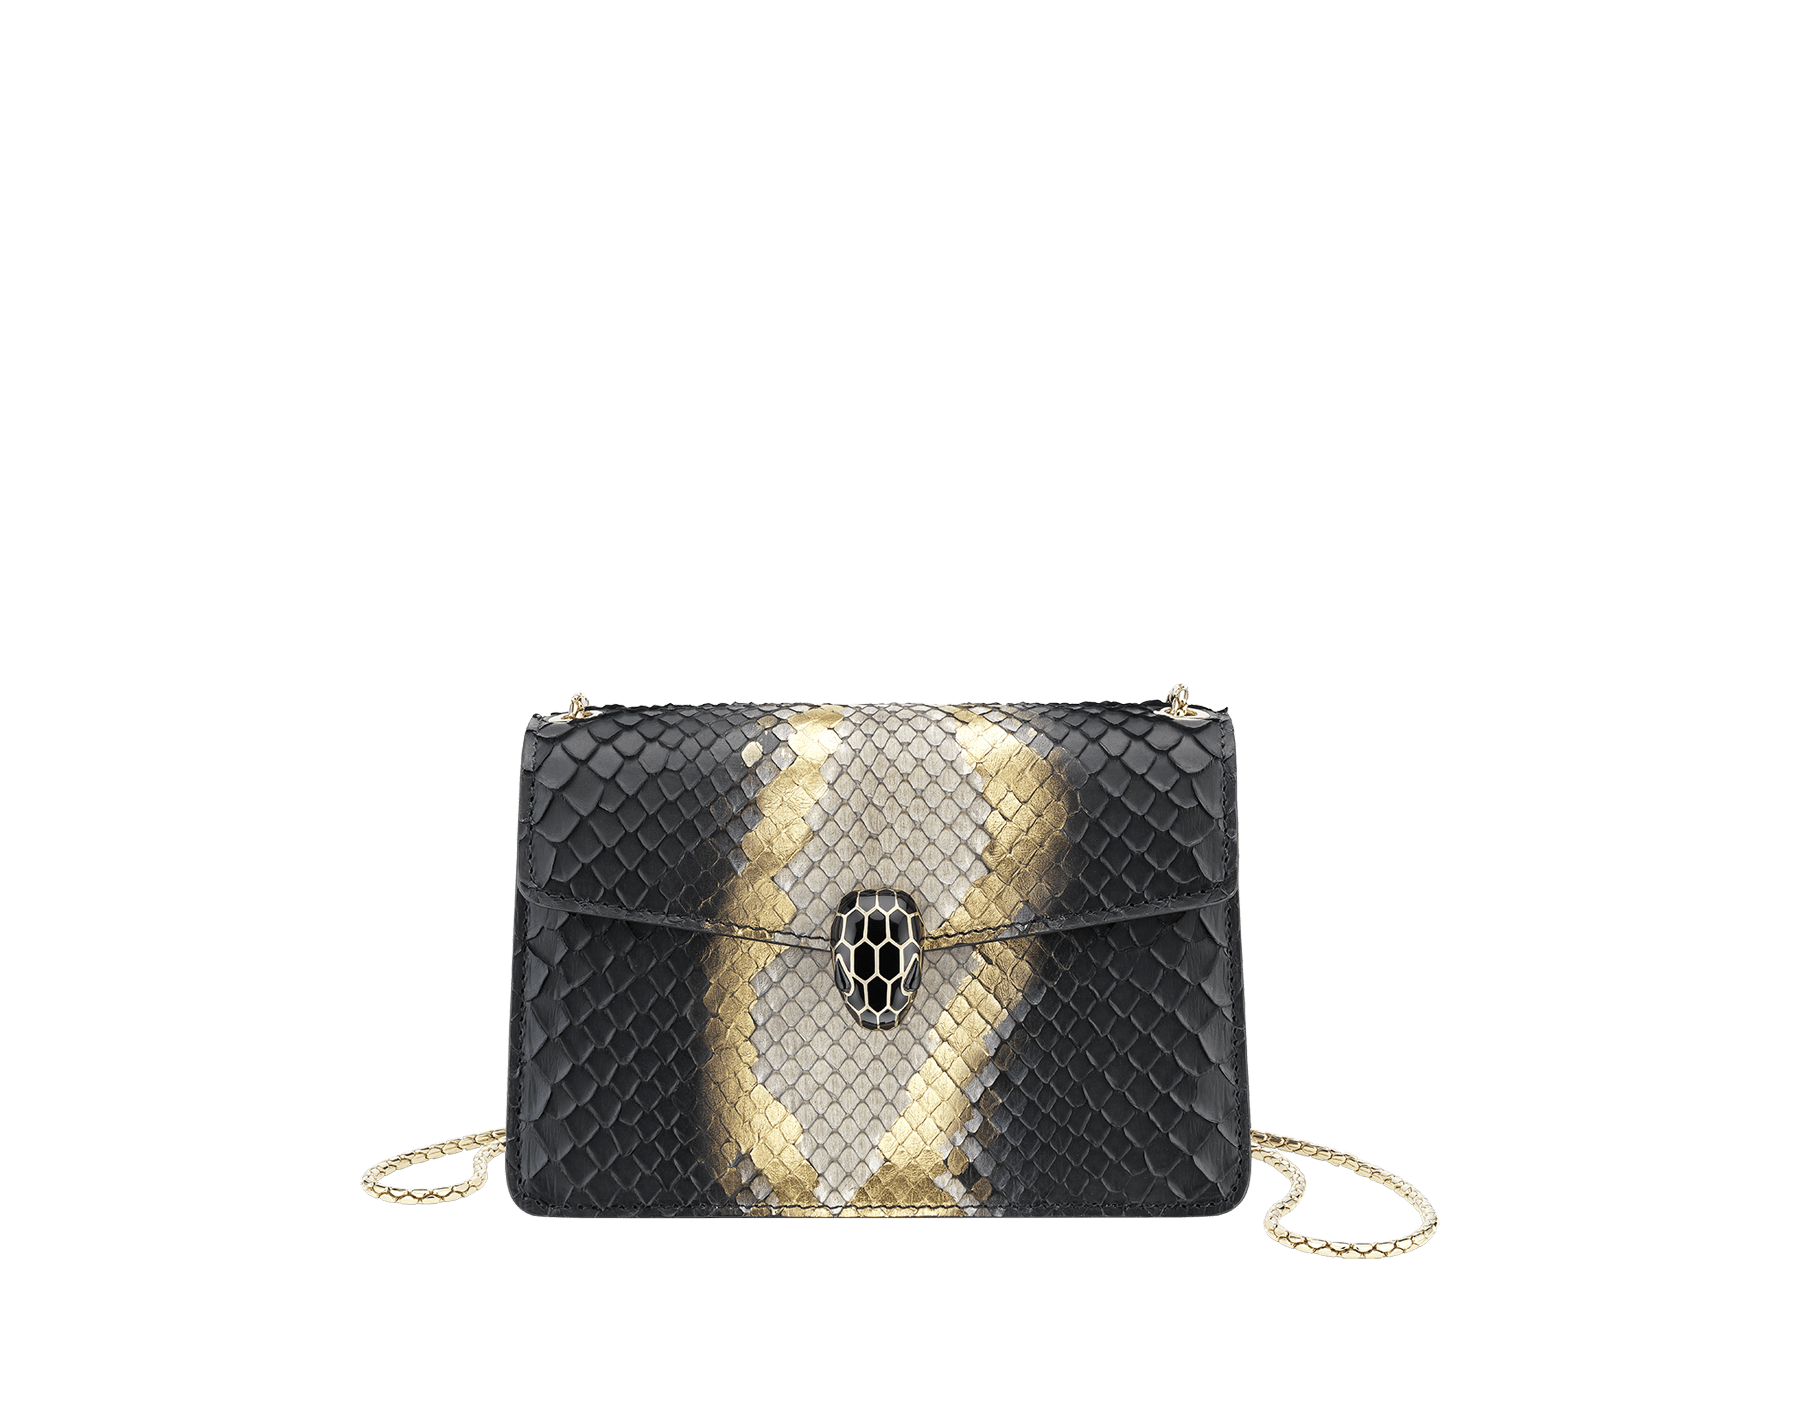 Serpenti Forever mini crossbody bag in black and gold Goldthunder python skin. Brass light gold plated snake head closure in black enamel, with black onyx eyes. 288102 image 1